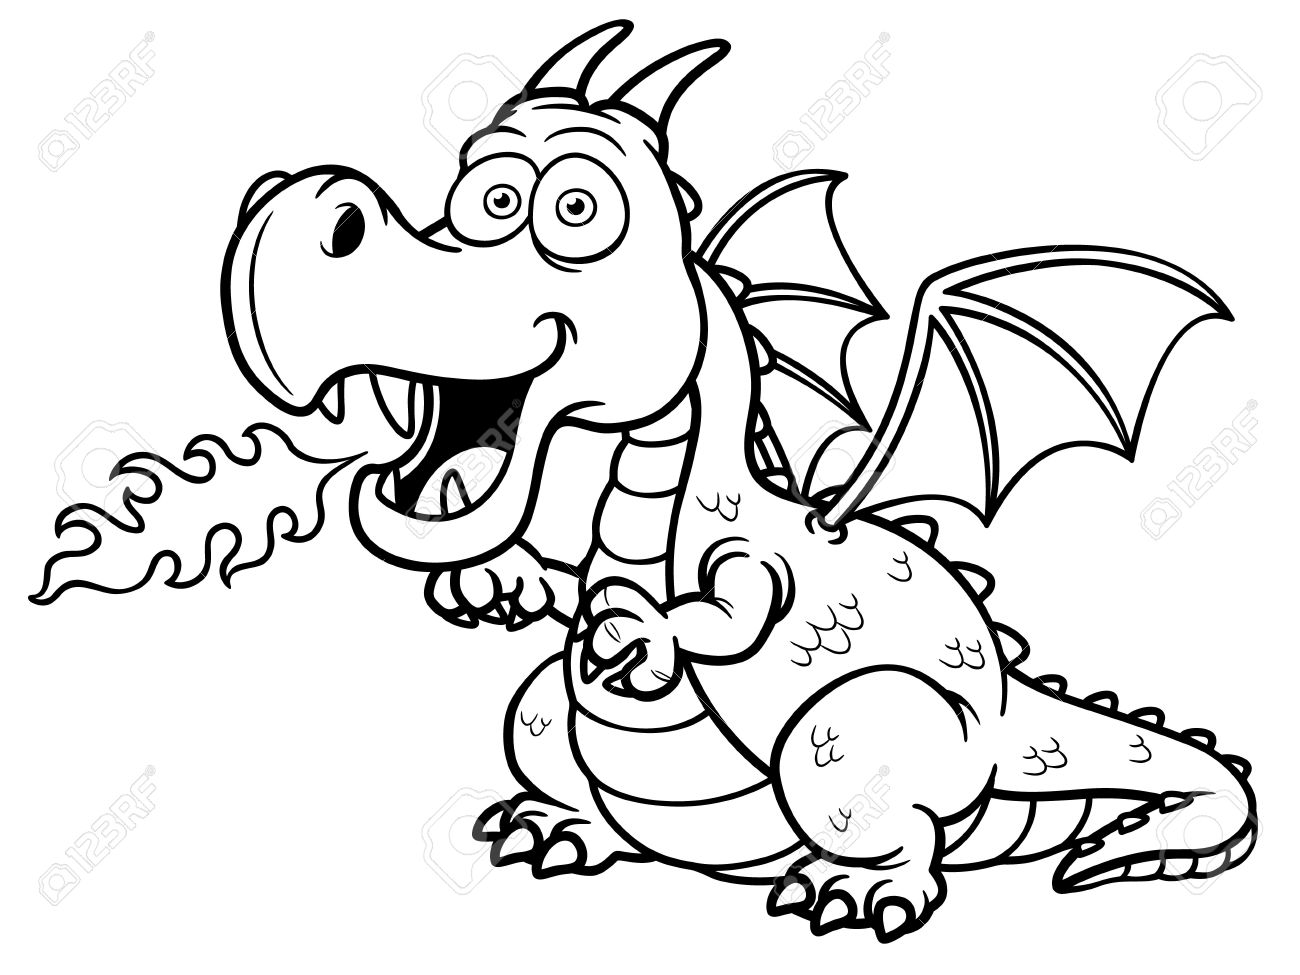 Vector Illustration Of Cartoon Dragon Fire - Coloring Book Royalty ...